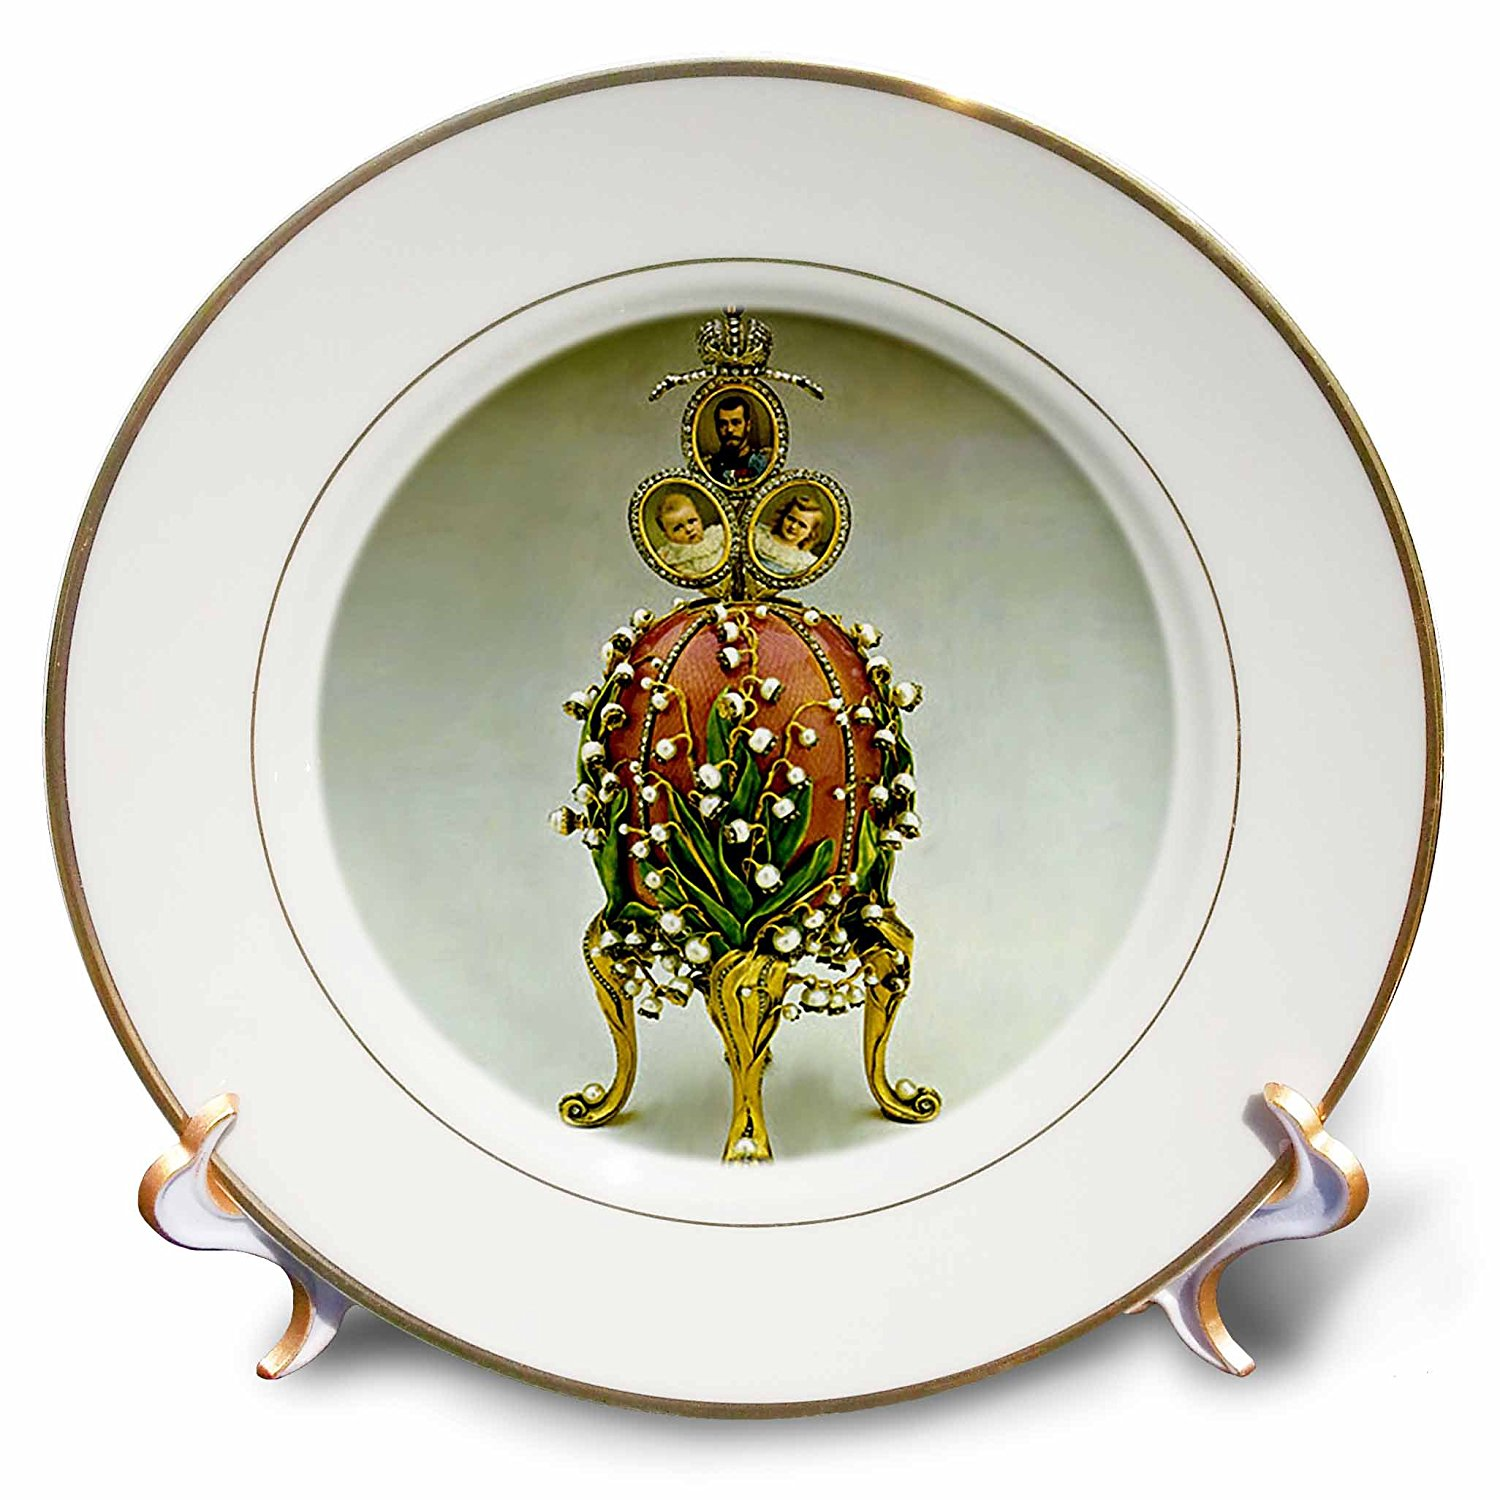 Faberge® Eggs - Picturing Faberge® Egg Lilies Of The Valley - 8 inch Porcelain Plate (cp_565_1)